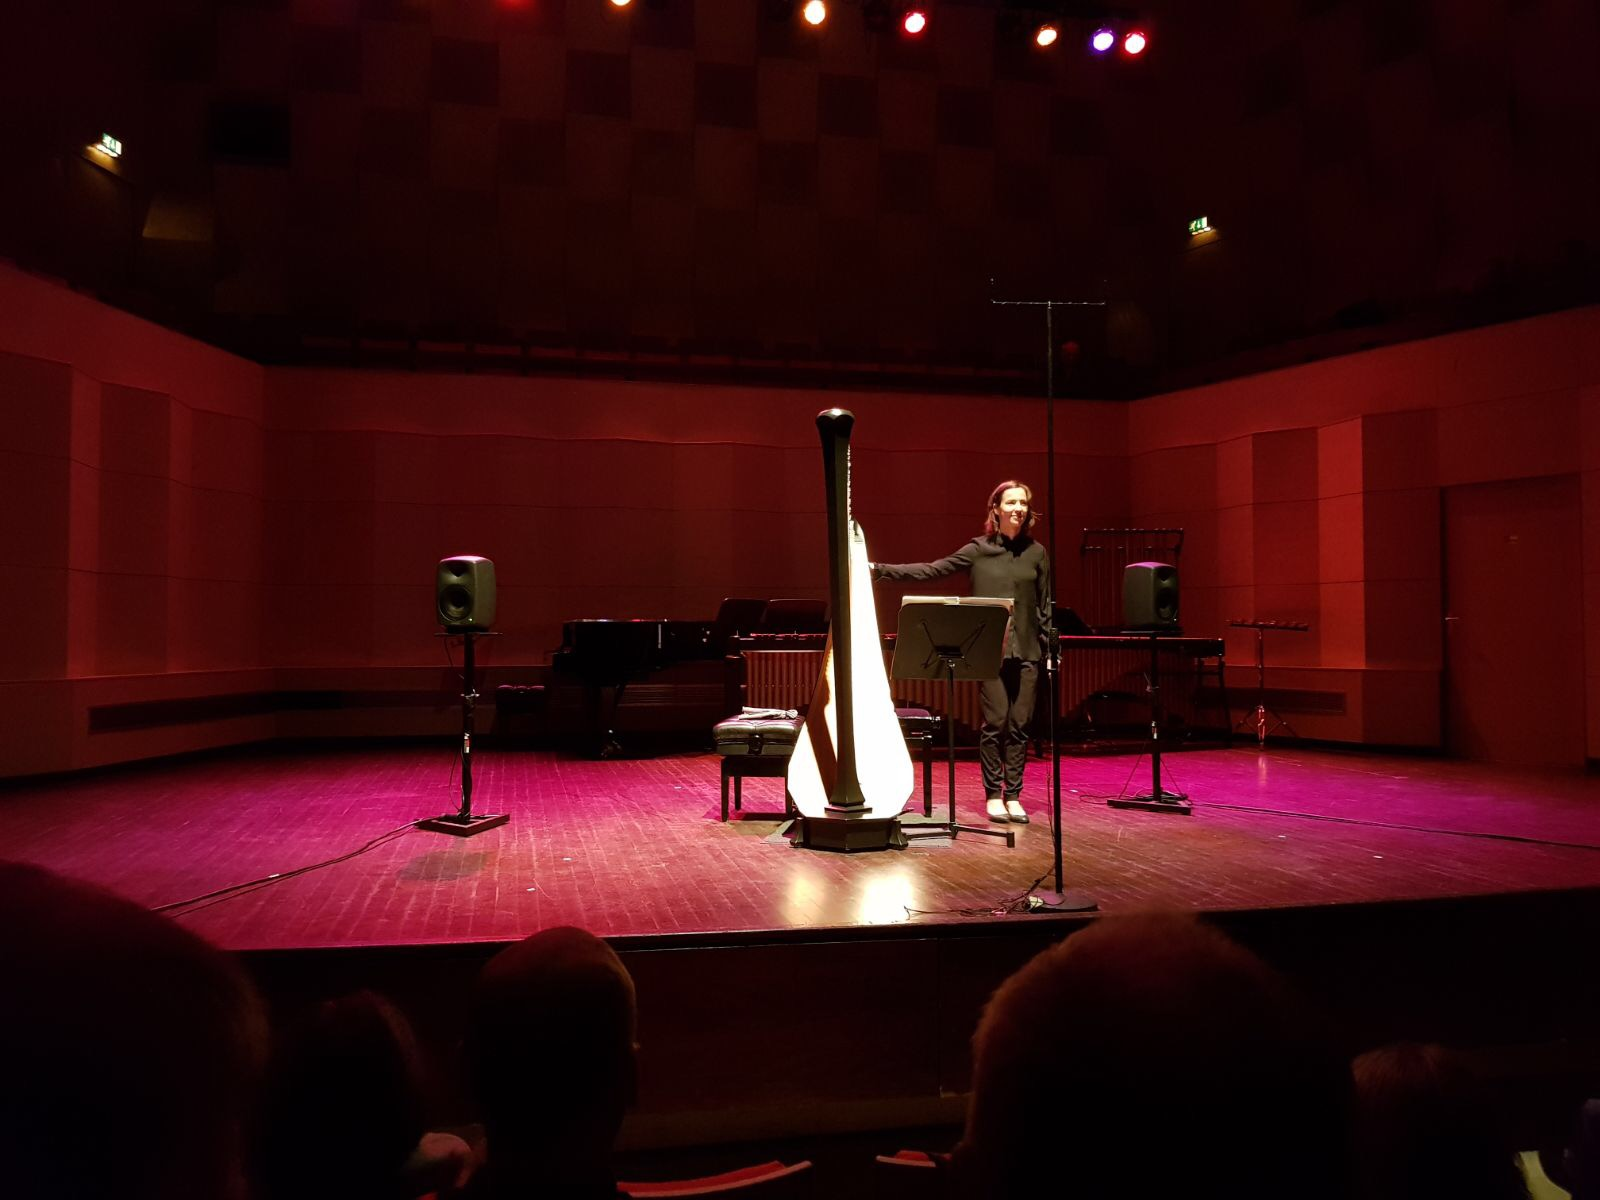 "Premiere of ""The Bell and The Maiden"" (2017) specially written for me, solo harp, by Peter-Jan Wagemans. 27th of November 2017, Jurriaanse Zaal, De Doelen."